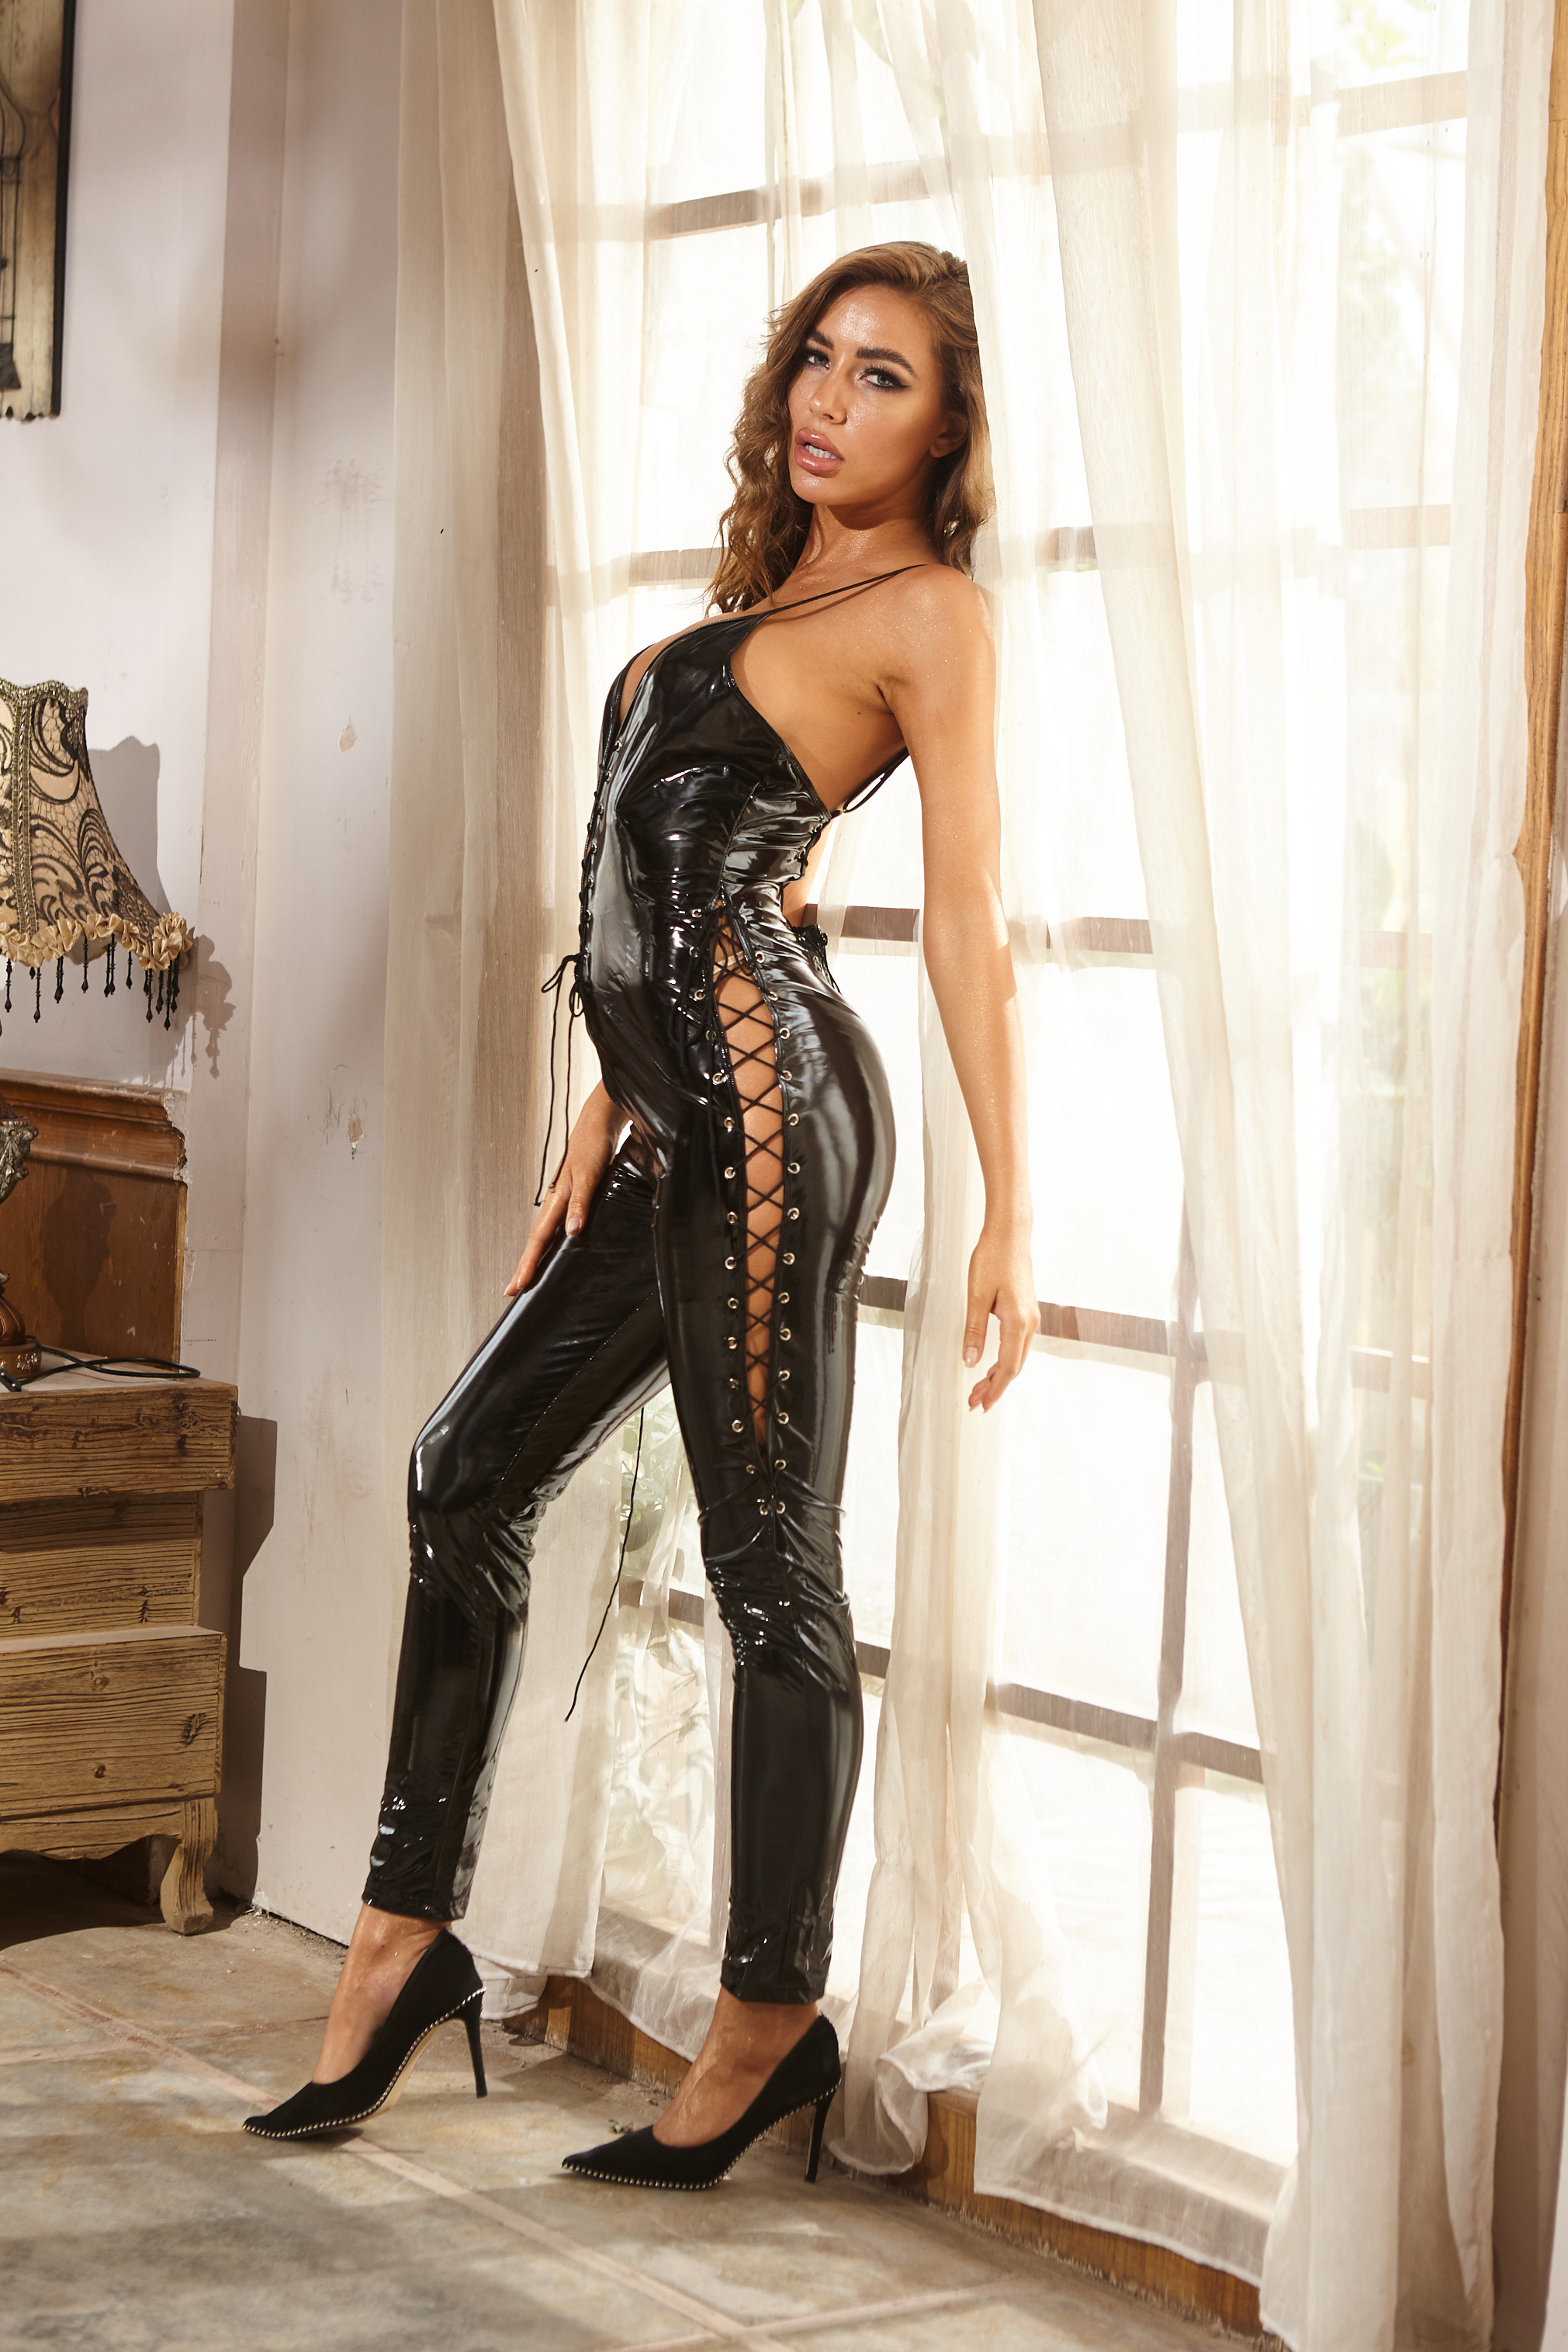 <font><b>Sexy</b></font> <font><b>Lingerie</b></font> Hot Women Prisoners Pu <font><b>Leather</b></font> Teddy Sex <font><b>Babydoll</b></font> Erotic Lenceria Club Mini Dress Costumes <font><b>Lingerie</b></font> Plus Size image